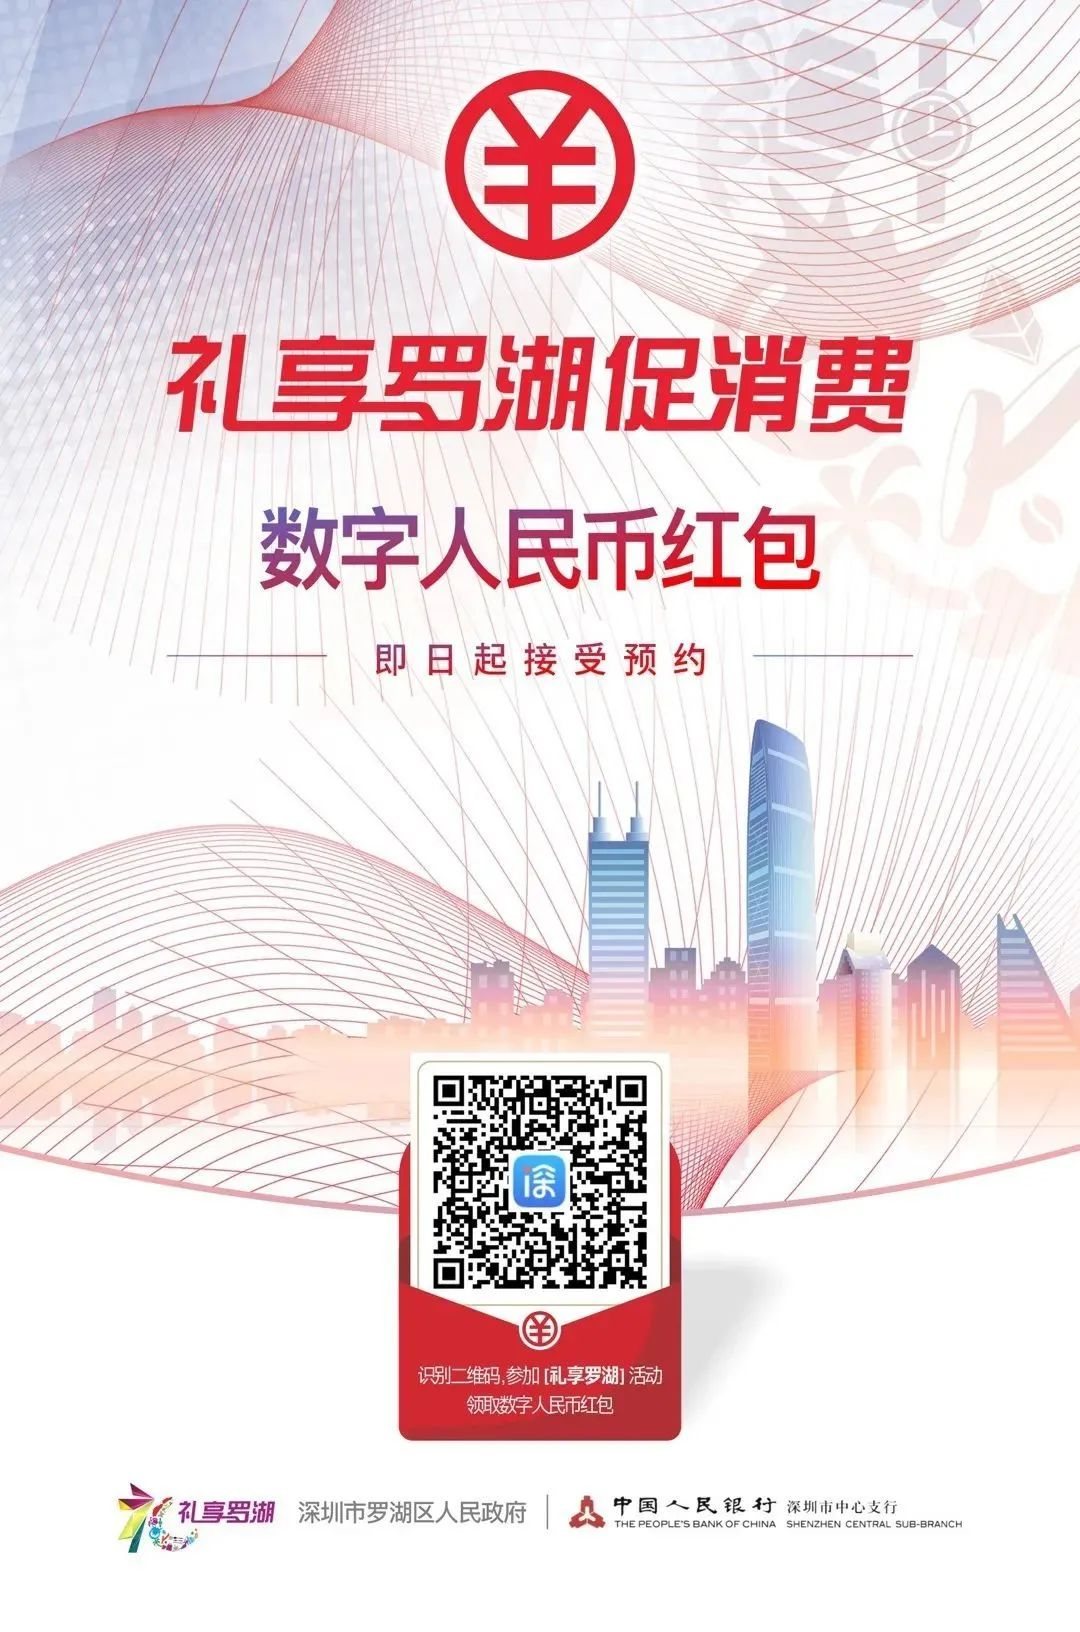 Digital RMB is Coming! Shenzhen Trials it with Lottery